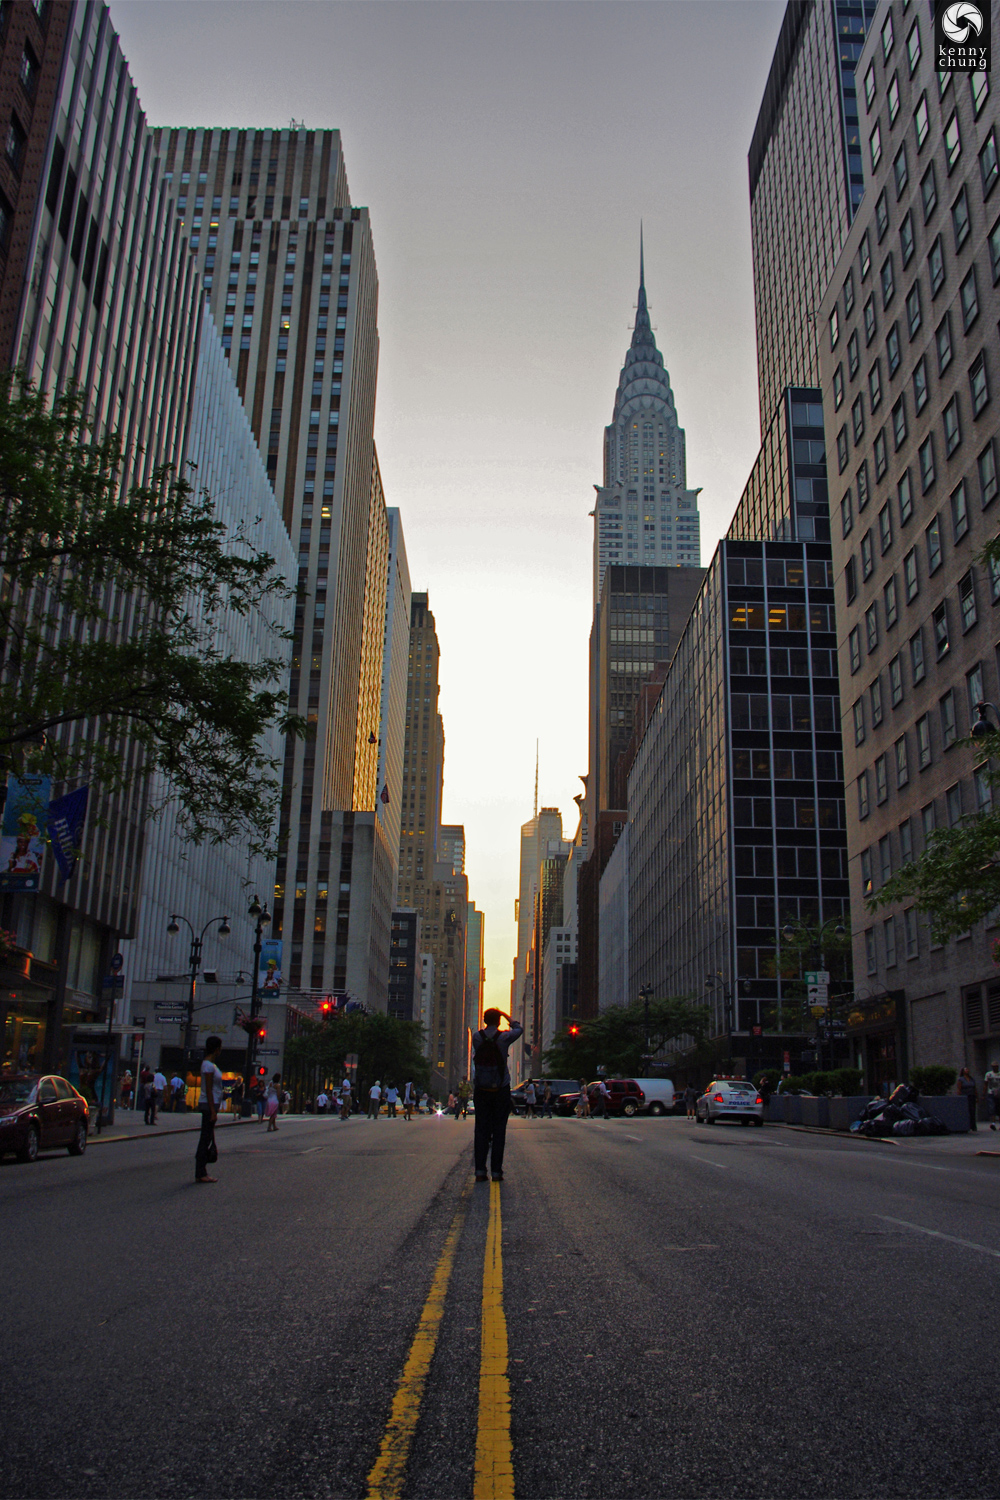 Street photographer at Manhattanhenge